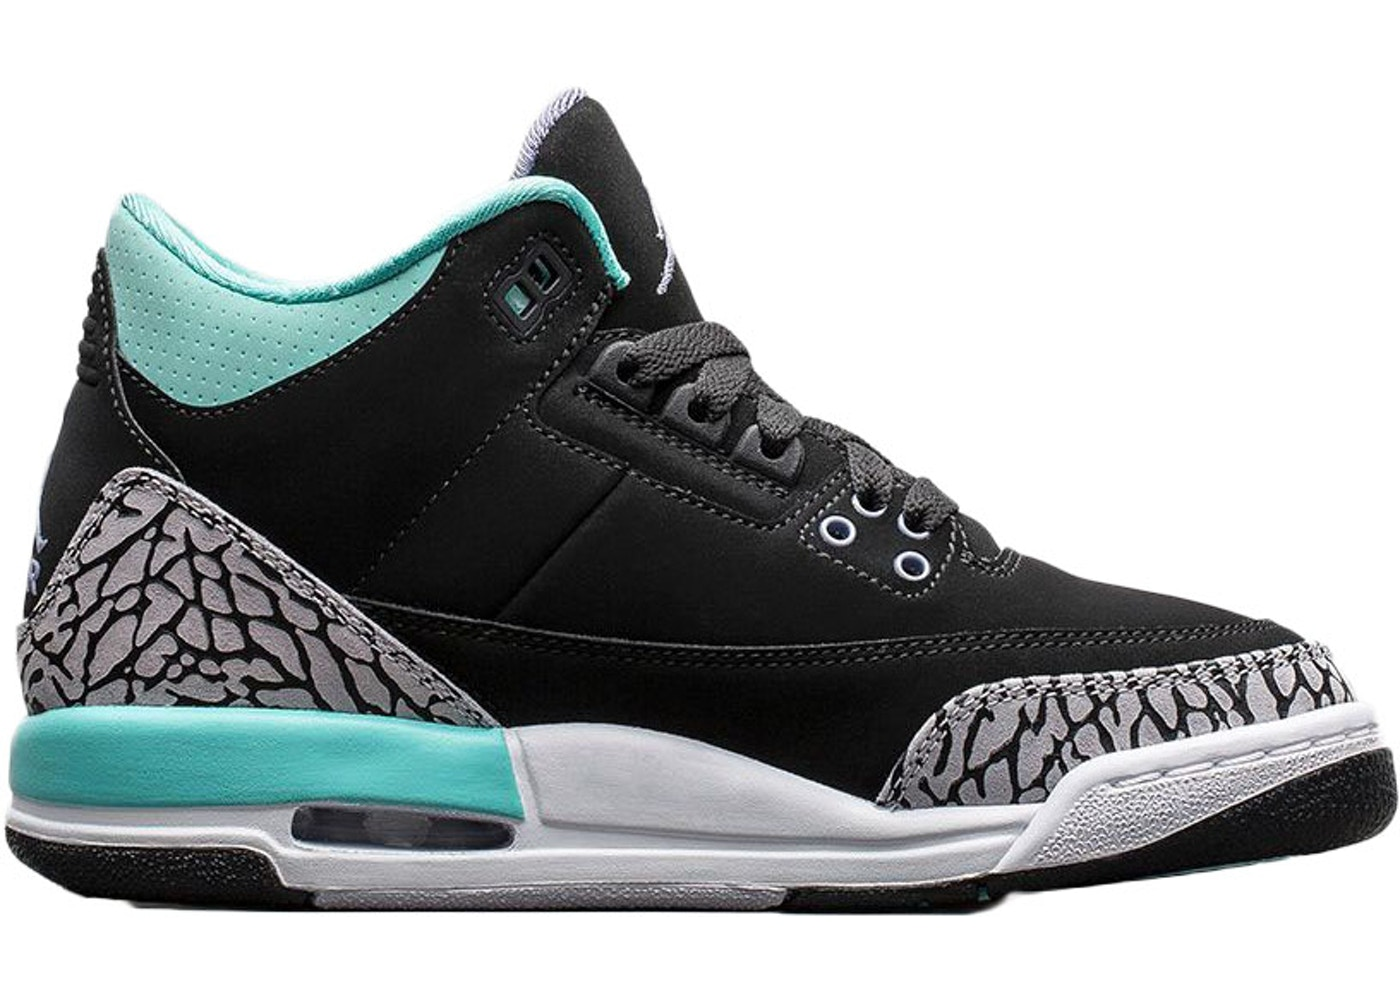 ec914cae740f7b Air Jordan 3 Shoes - Lowest Ask